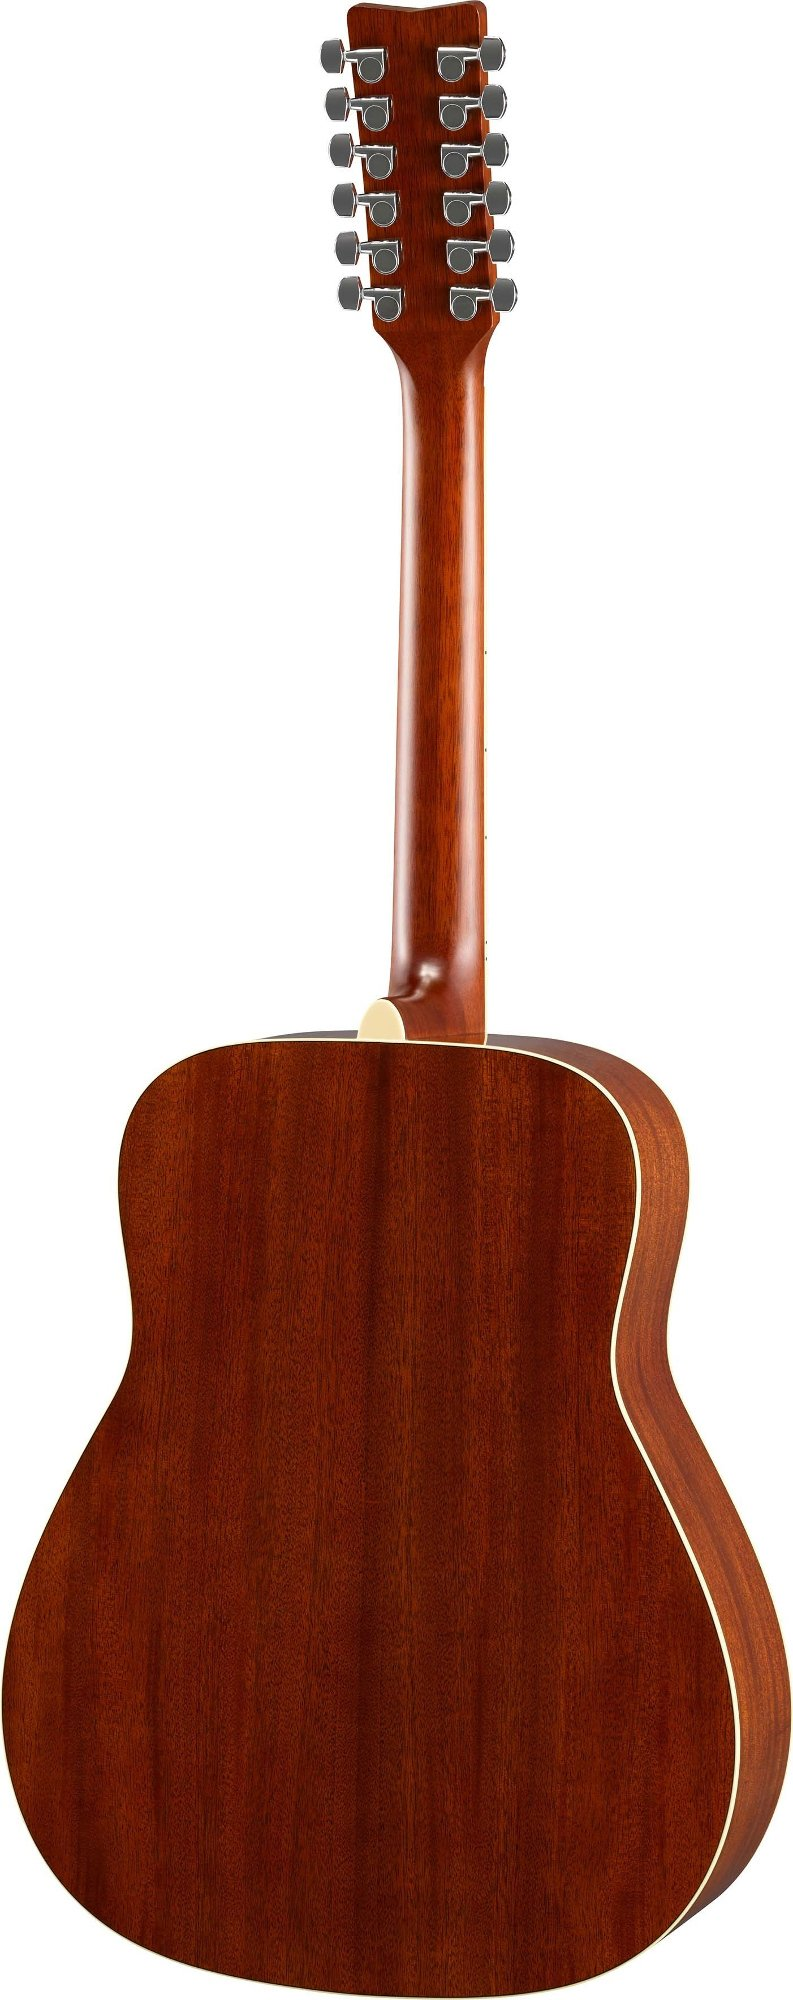 Yamaha FG820-12 12-String Acoustic Guitar with Solid Spruce Top, Mahogany Back & Sides FG820-12